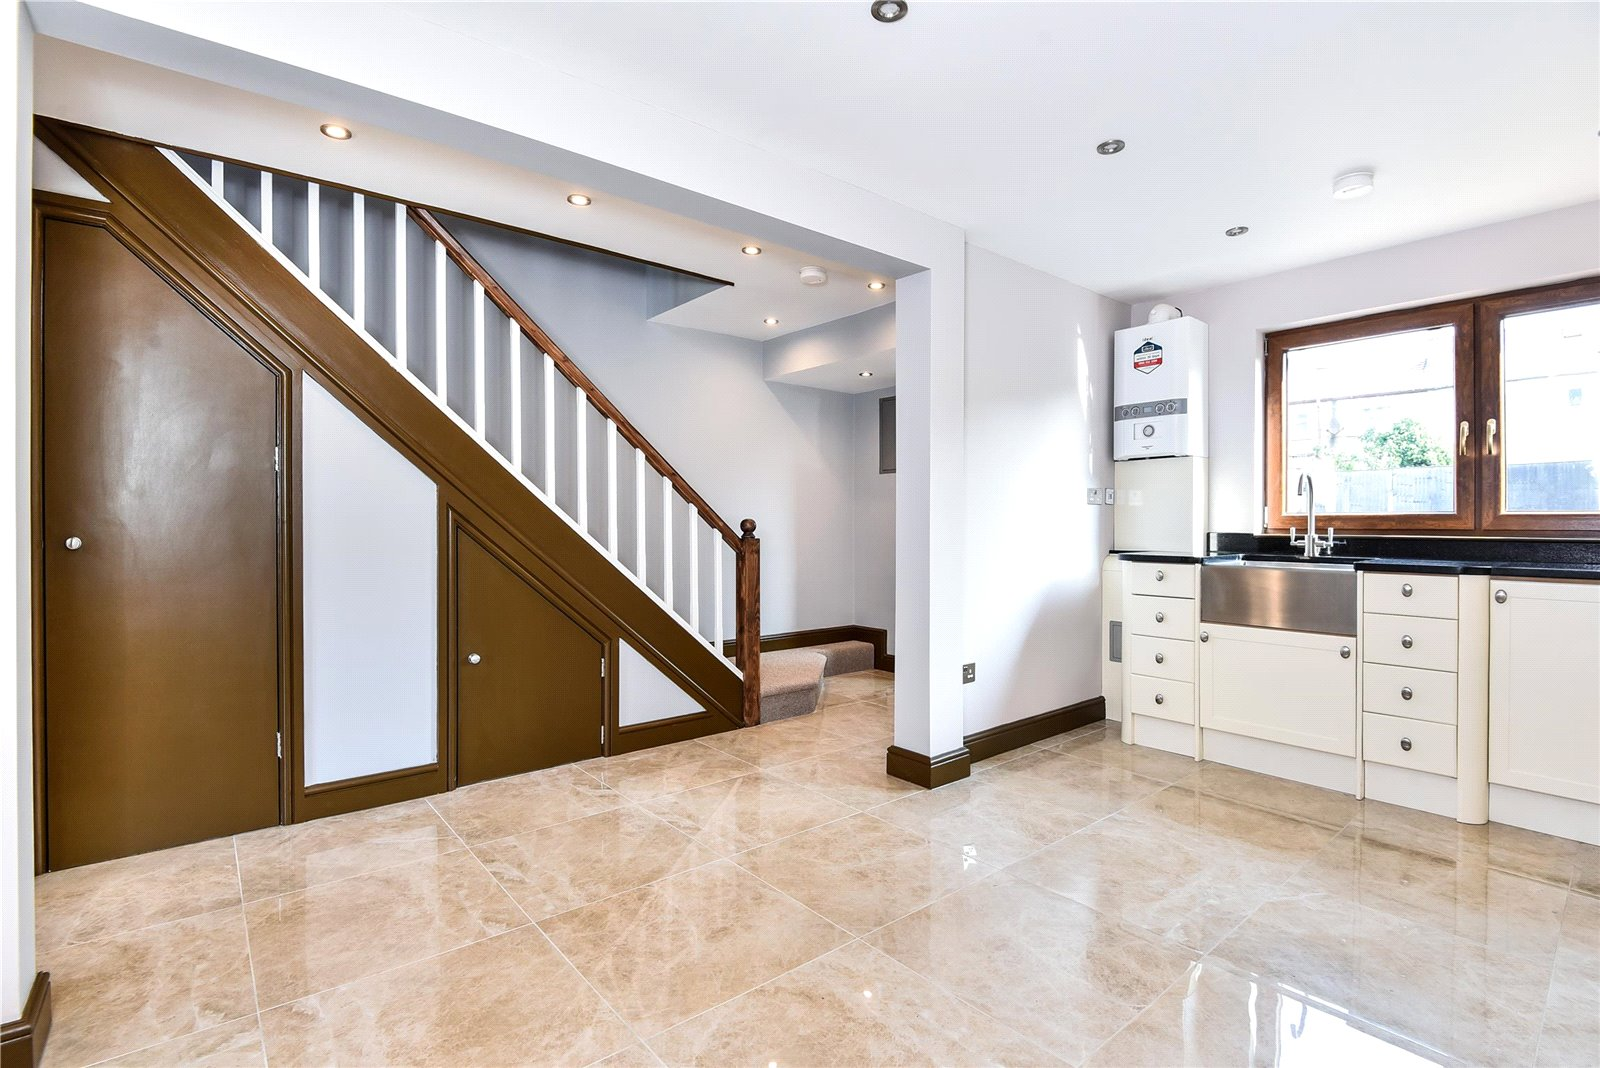 3 bed house for sale in Streatham  - Property Image 4